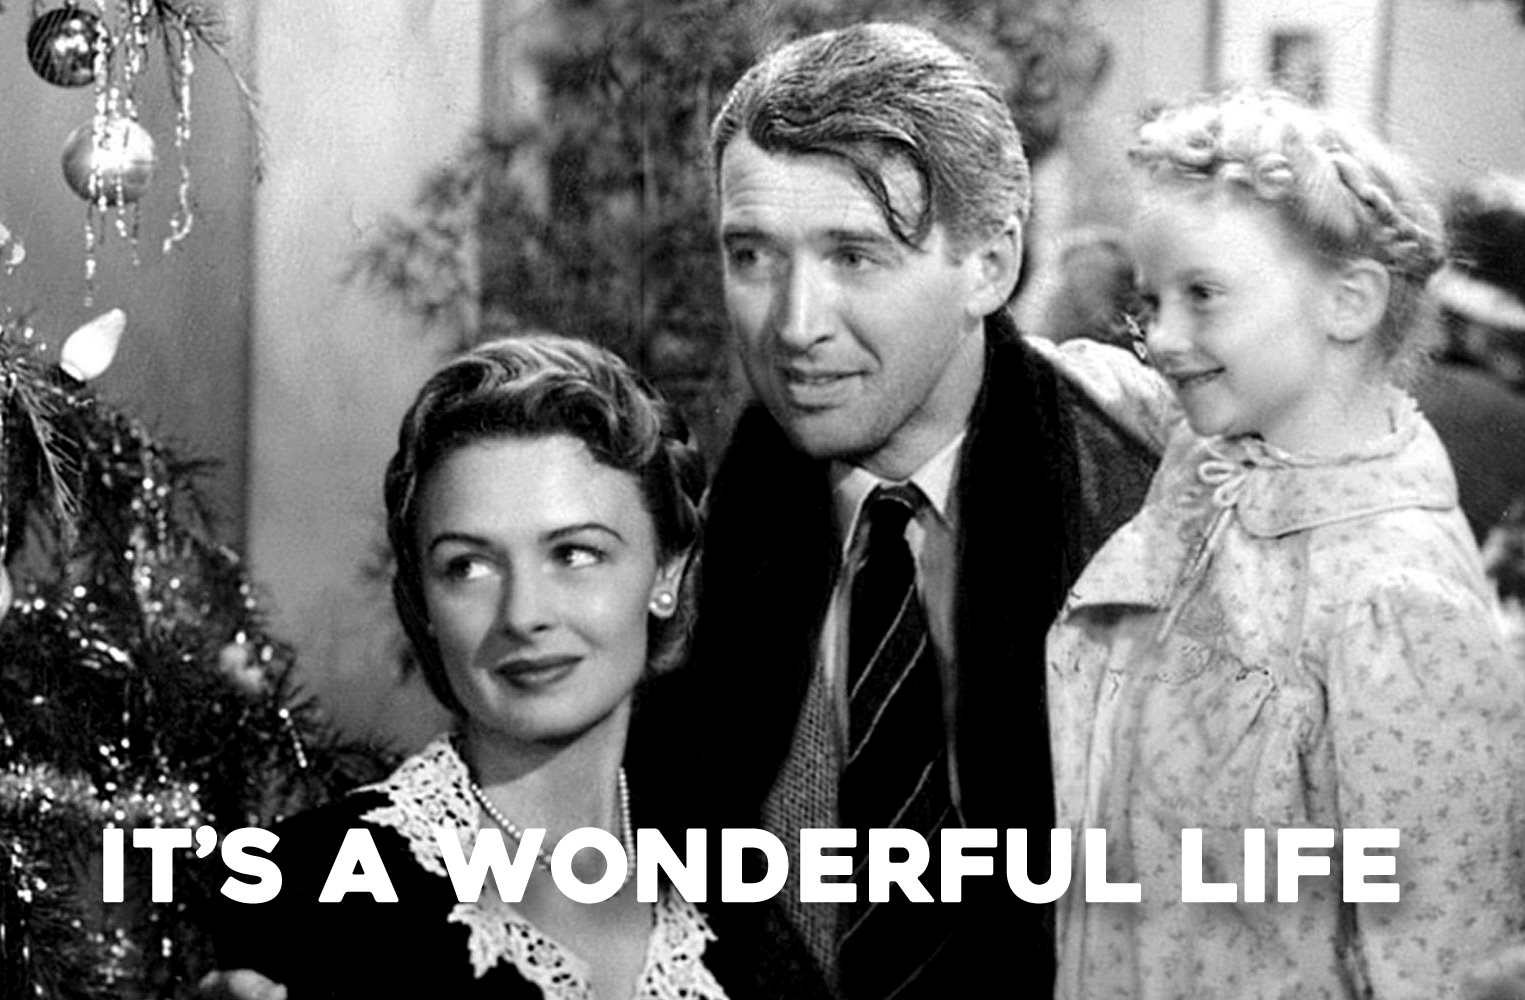 It S A Wonderful Life Quote In Book At End: Andy At Faith: It's A Wonderful Life